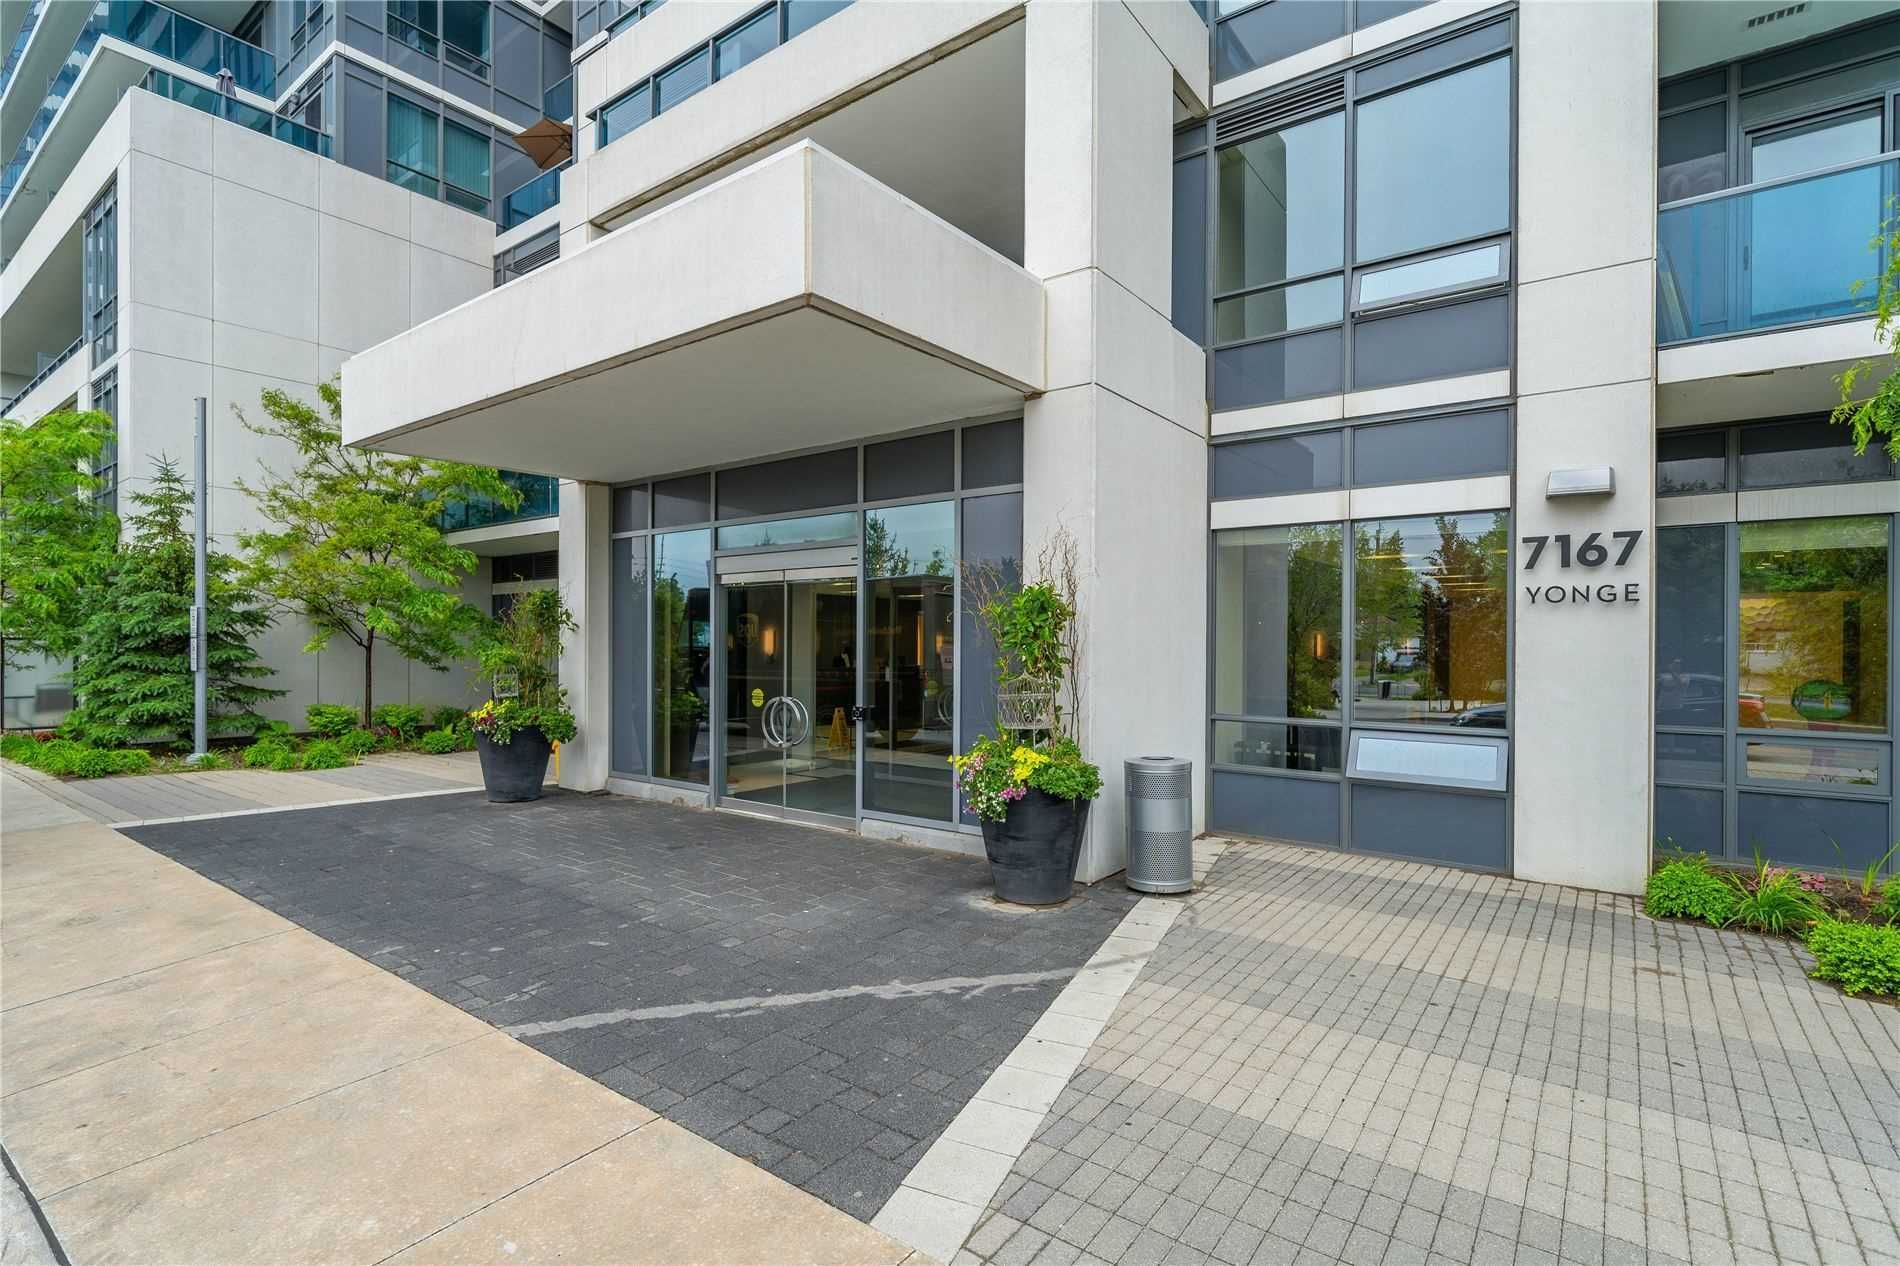 7167 Yonge St, unit 1005 for sale in Toronto - image #2